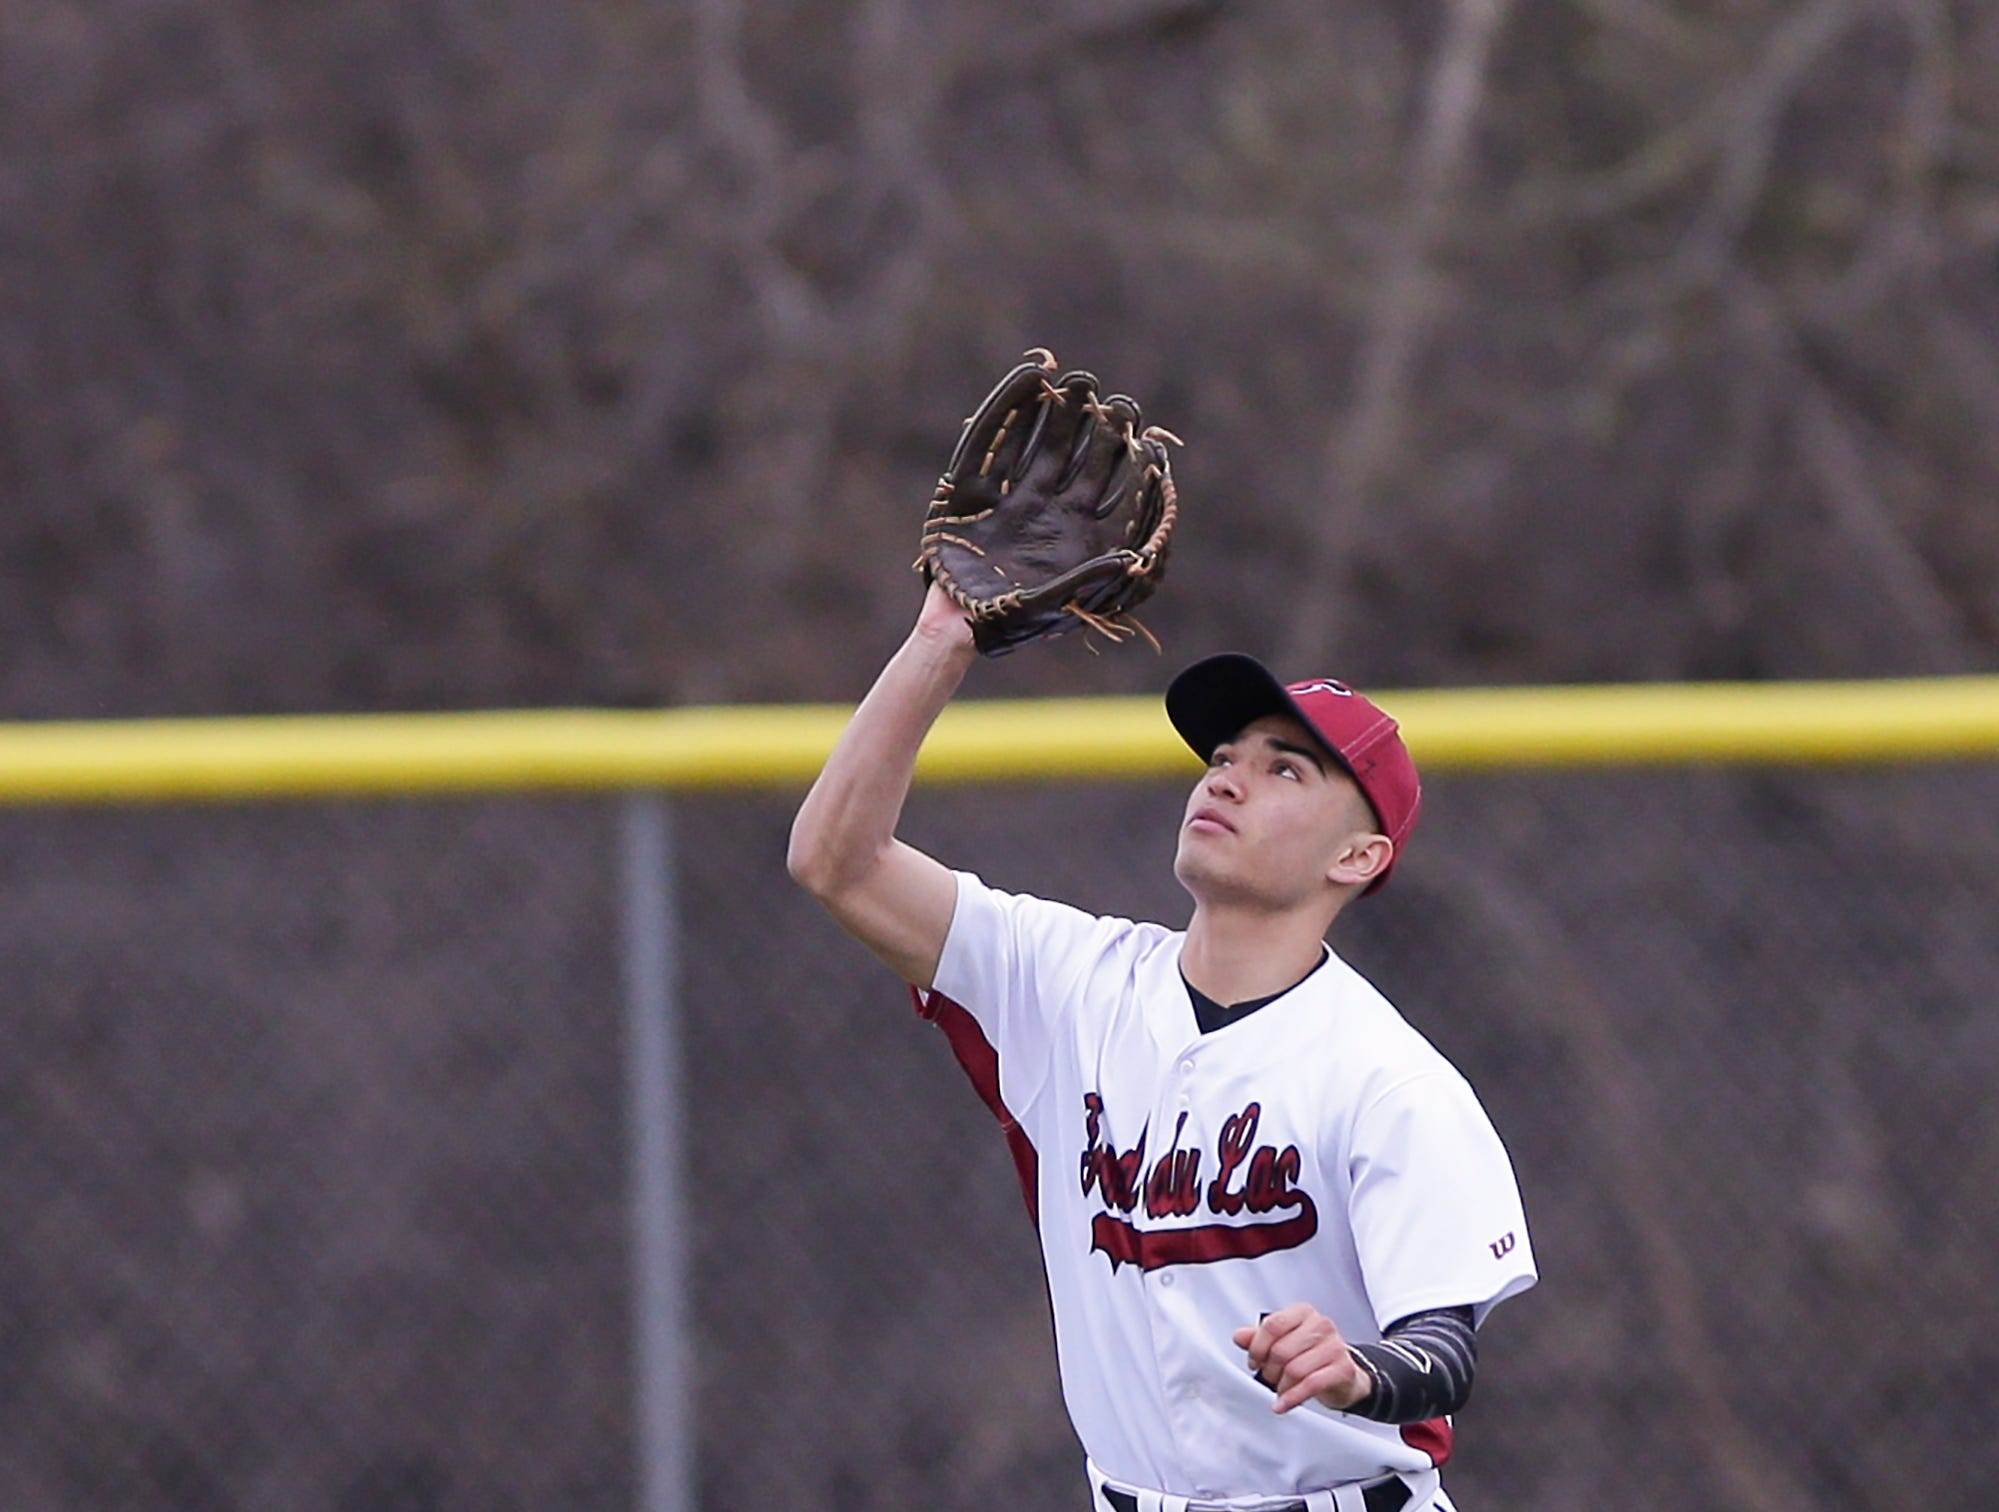 Fond du Lac High School baseball's Julian Murillo catches a fly ball against Neenah High School during their game Thursday, April 18, 2019 in Fond du Lac, Wis. Doug Raflik/USA TODAY NETWORK-Wisconsin